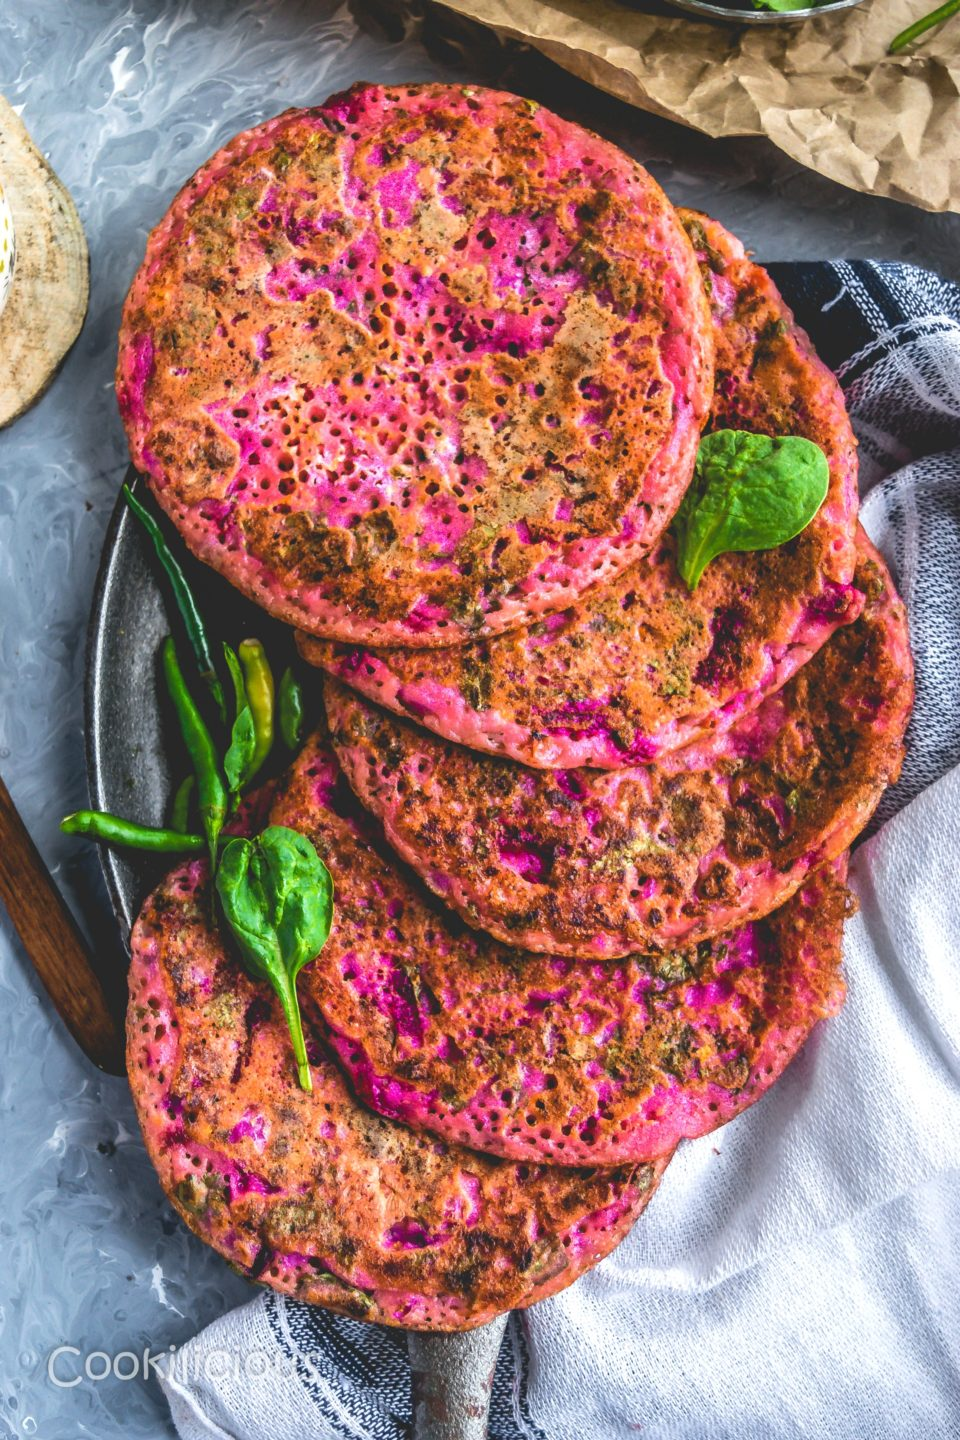 a neatly stacked Pink Uttapam with Beets & Veggies on a tray